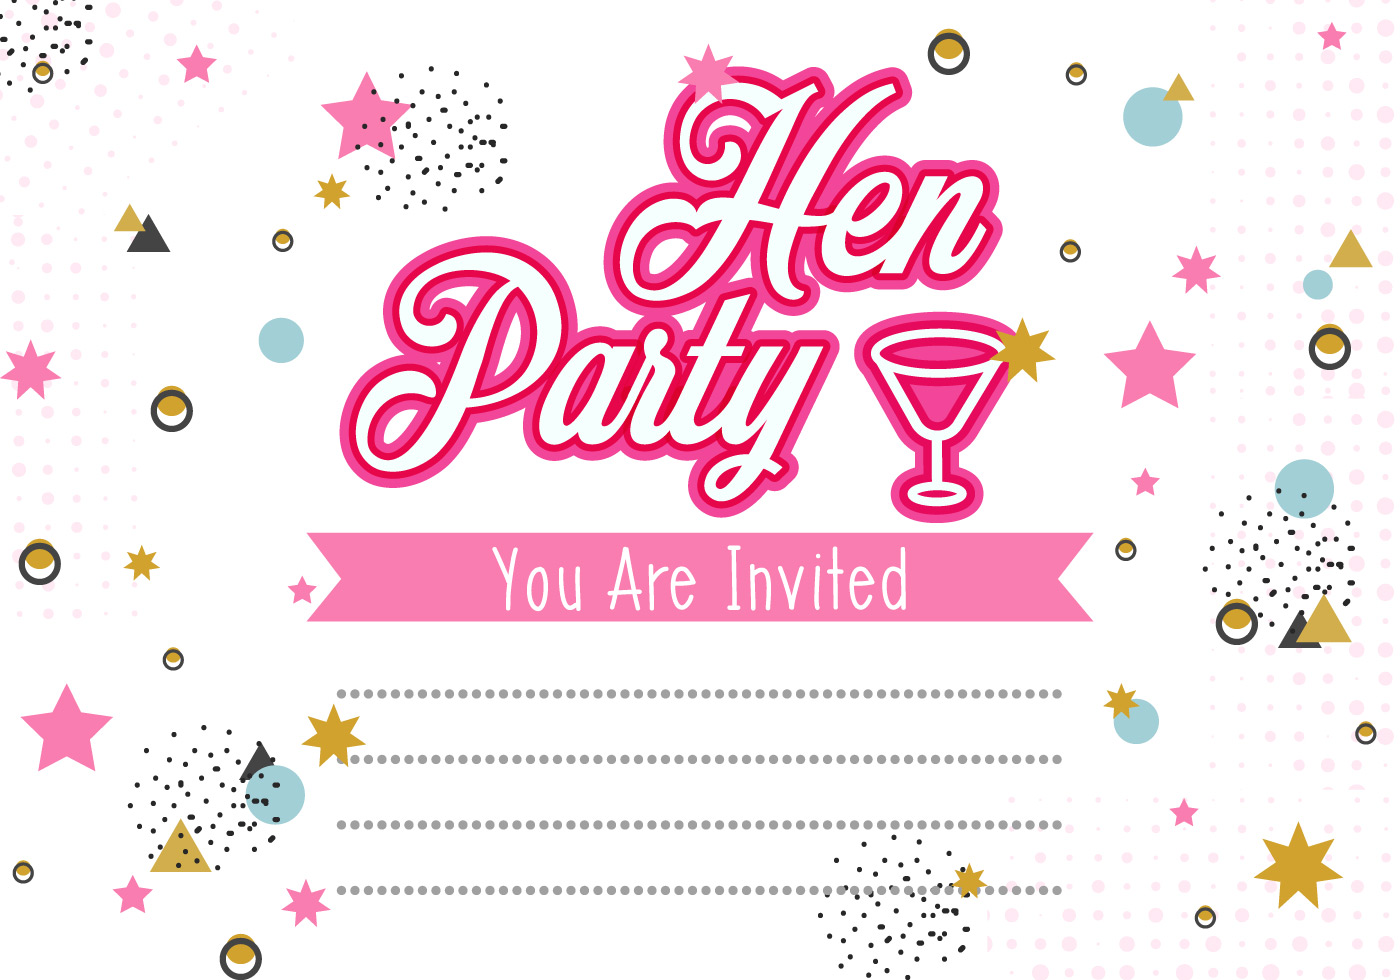 Hen Party Invitation Template Ilration Free Vector Art Stock Graphics Images